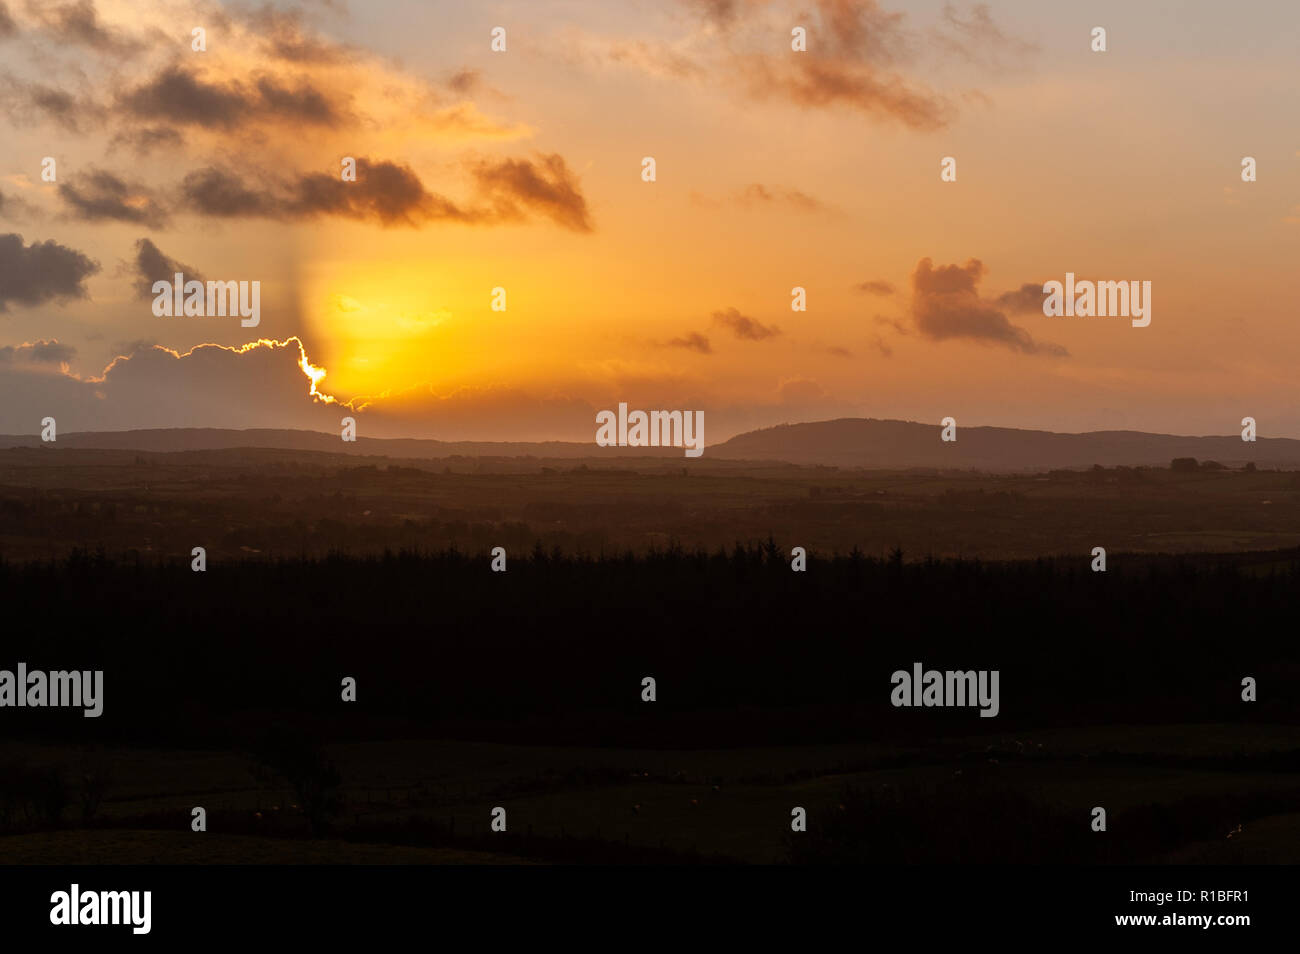 Ballydehob, West Cork, Ireland. 11th Nov, 2018. The sun rises on the 100th anniversary of the end of the first World War. Today will be dry in many areas with highs of 8 to 12° Celsius. Credit: Andy Gibson/Alamy Live News. Stock Photo